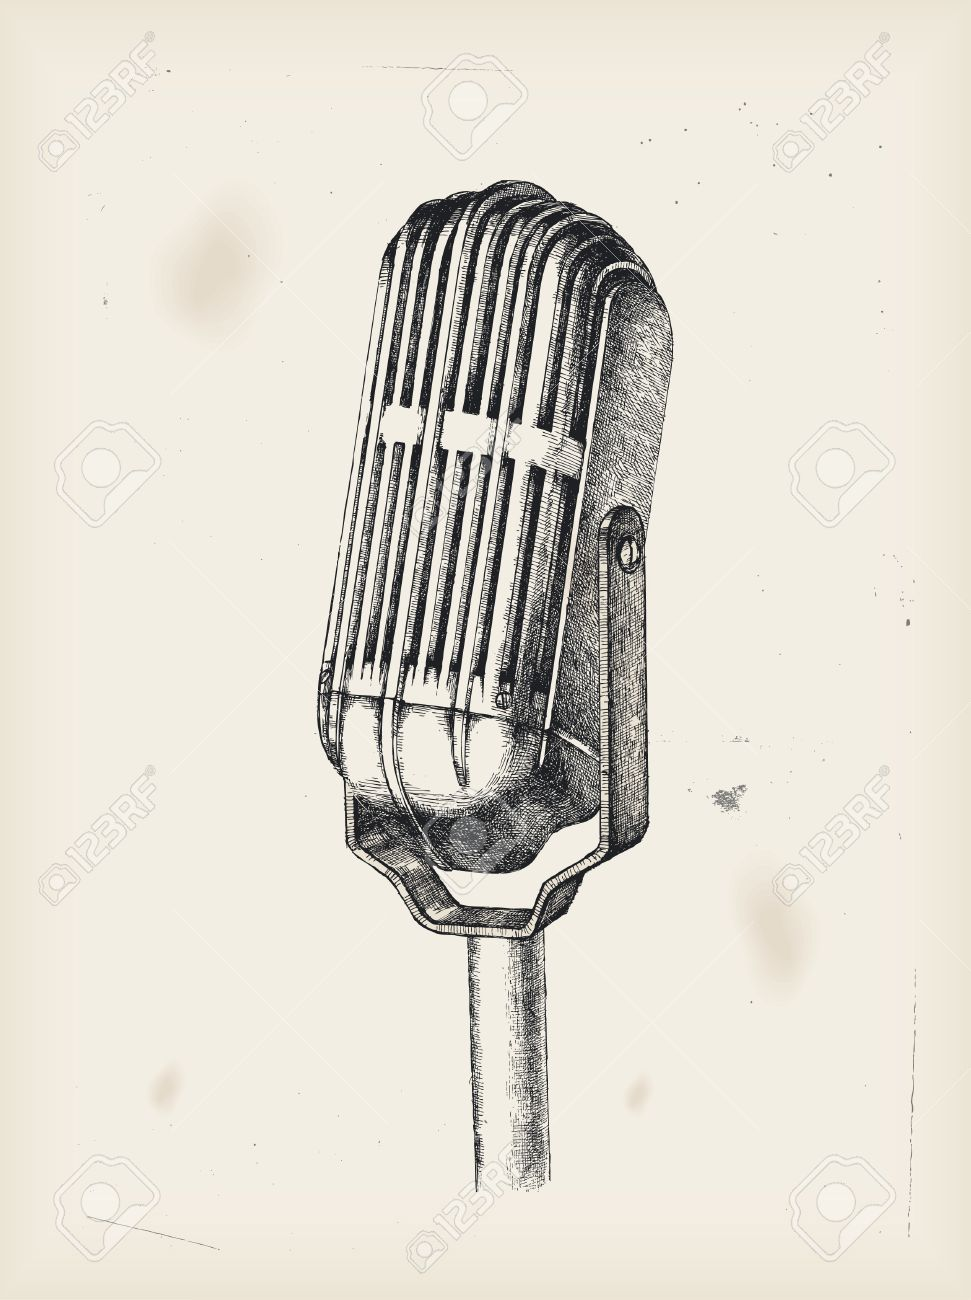 971x1300 Old Microphone Drawing Royalty Free Cliparts, Vectors, And Stock